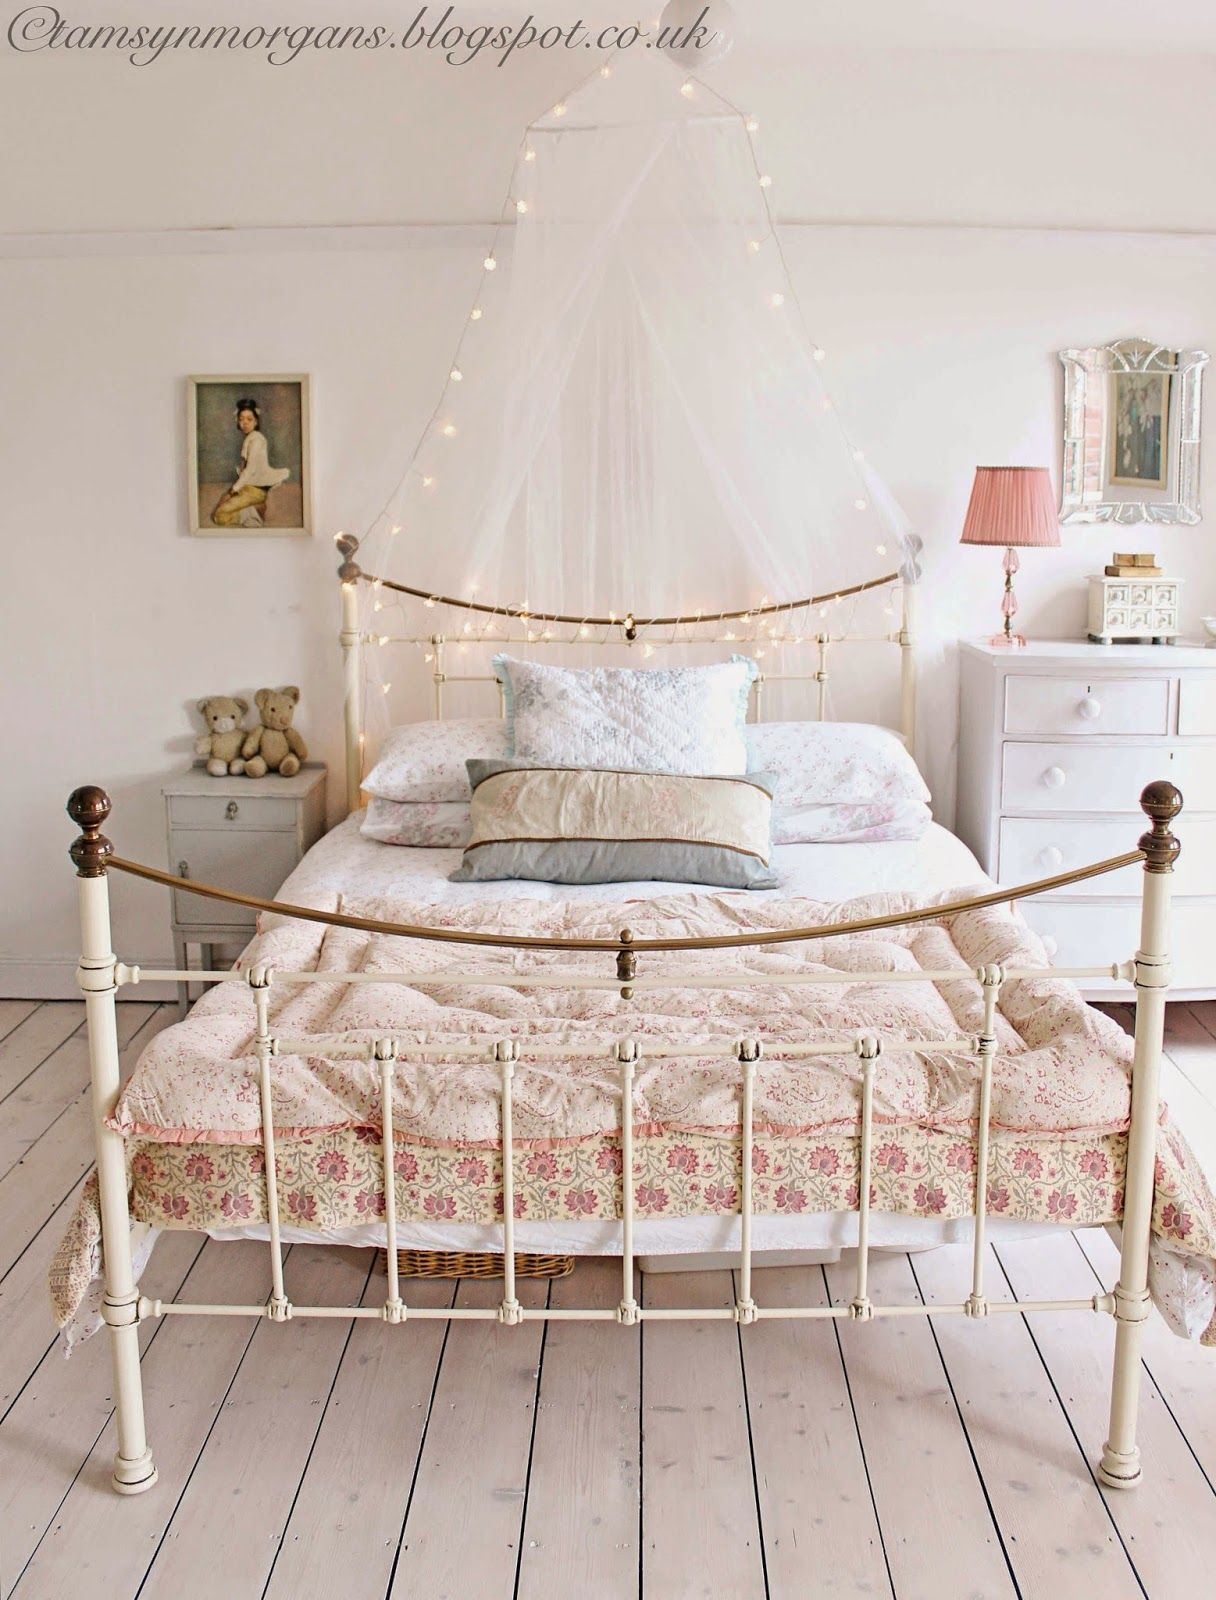 white cast iron bed . shabby chic bedroom for similar visit www